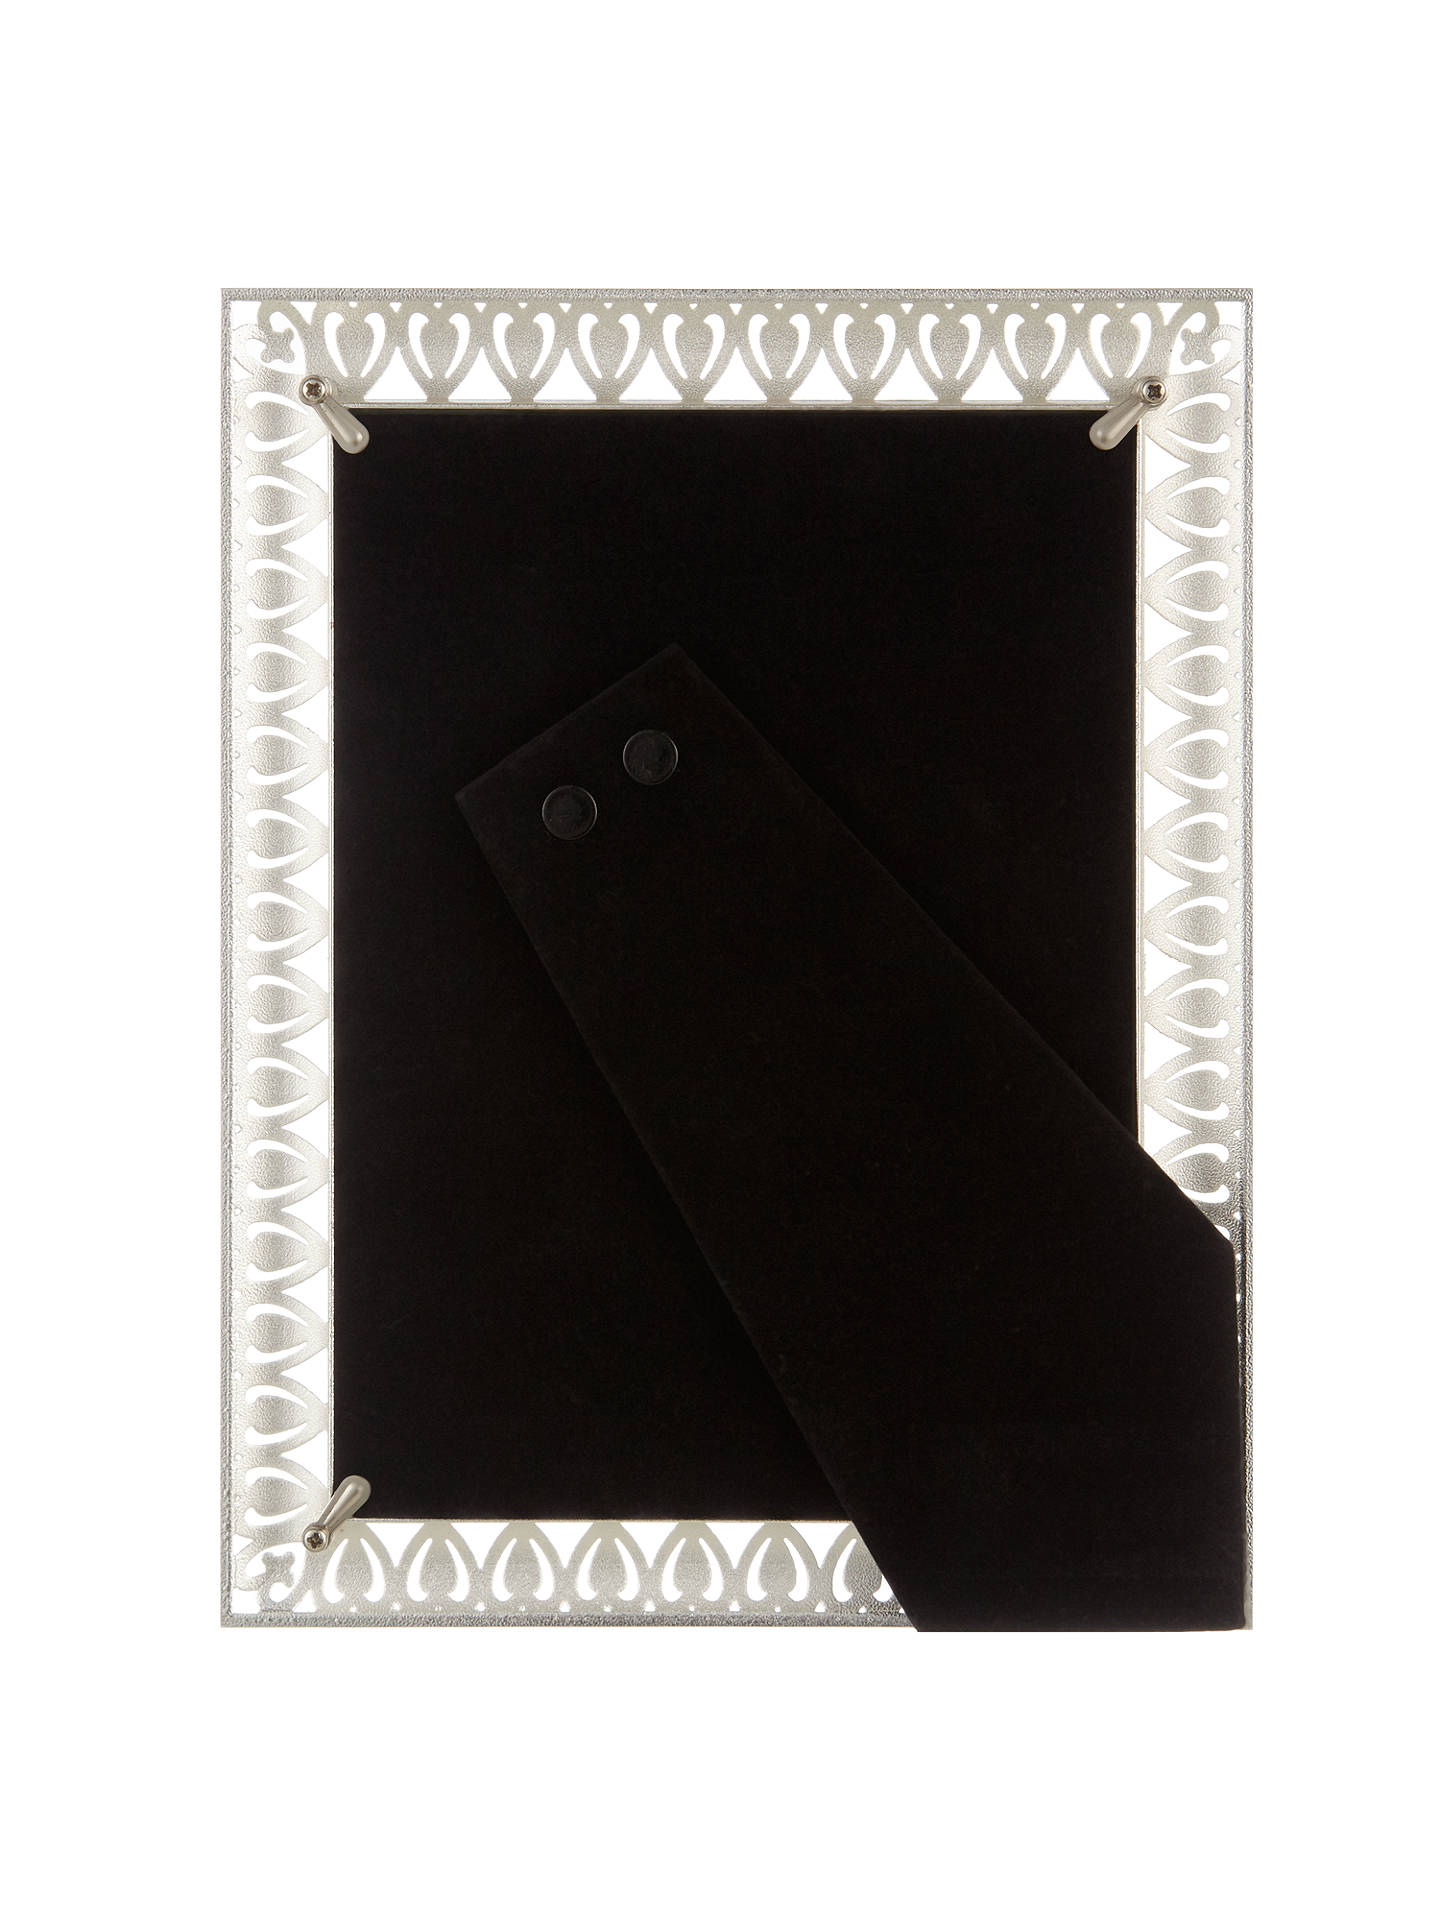 "BuyJohn Lewis & Partners Belle Photo Frame, 5 x 7"" (13 x 18cm), Silver Online at johnlewis.com"